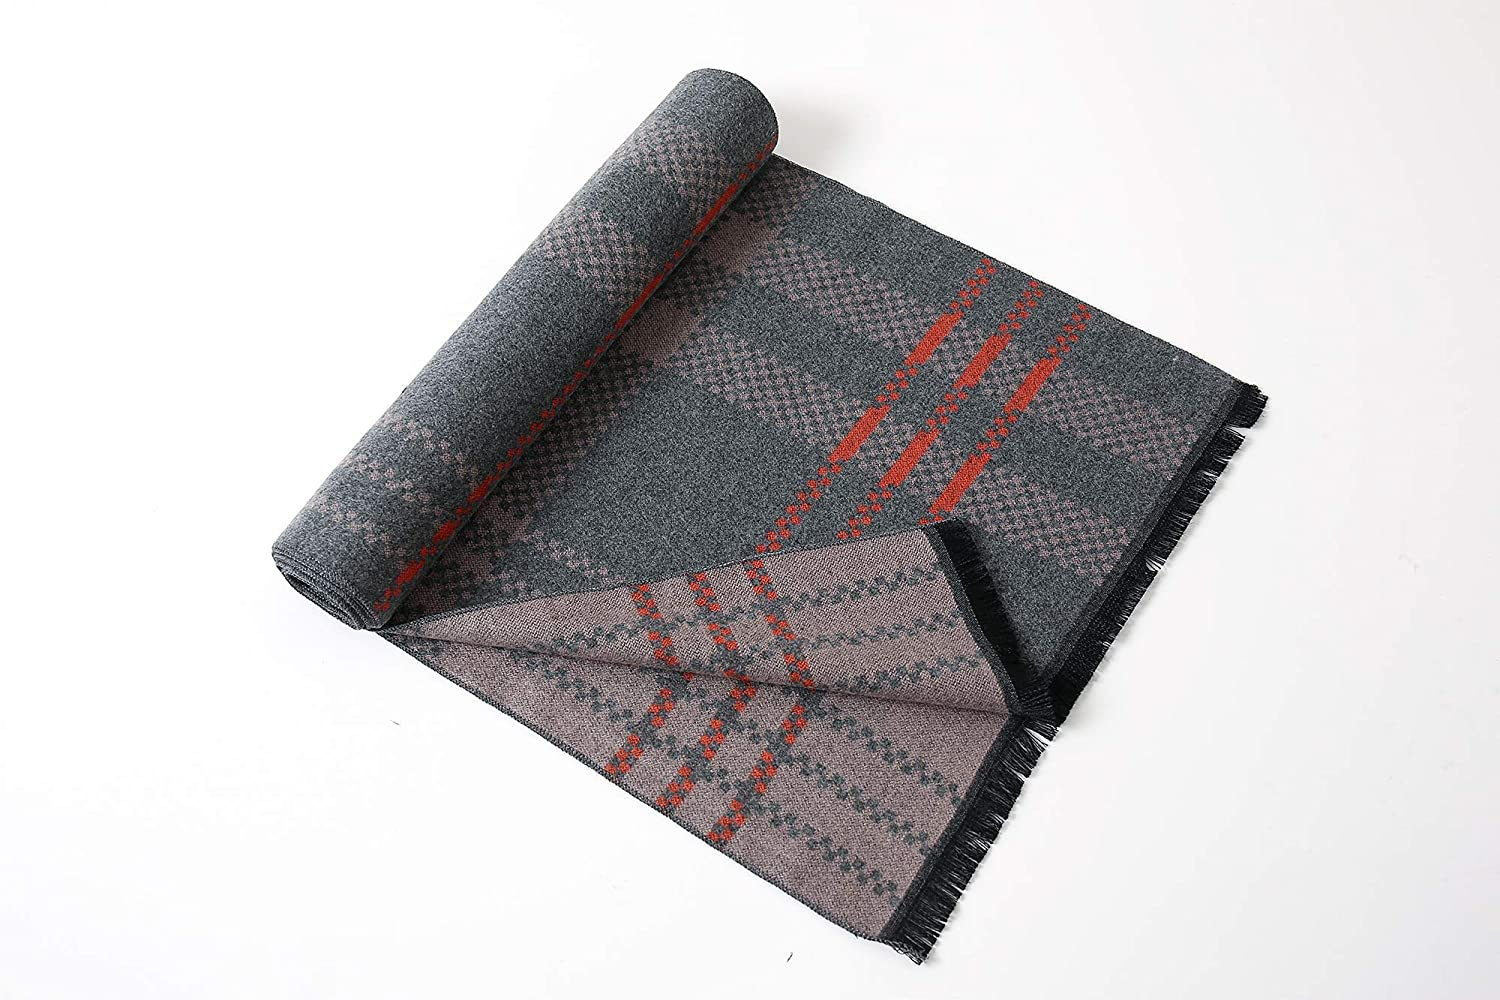 Eagool Thick Cashmere Scarf For Men Gift Idea Extremely Warm Super Soft Wool Scarf For Winter Autumn And Spring